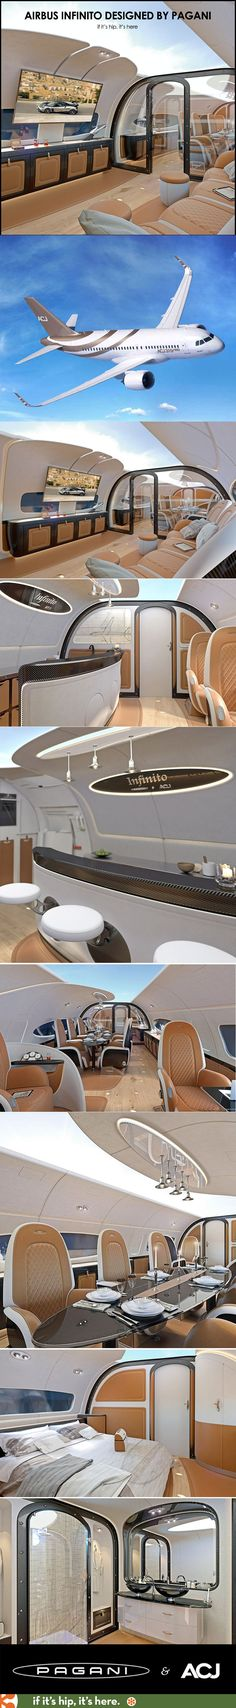 """Airbus and Pagani team up to create the luxurious Infinito Jet whose interior """"sky ceiling"""" projects a live image the exterior on the inside ceiling."""